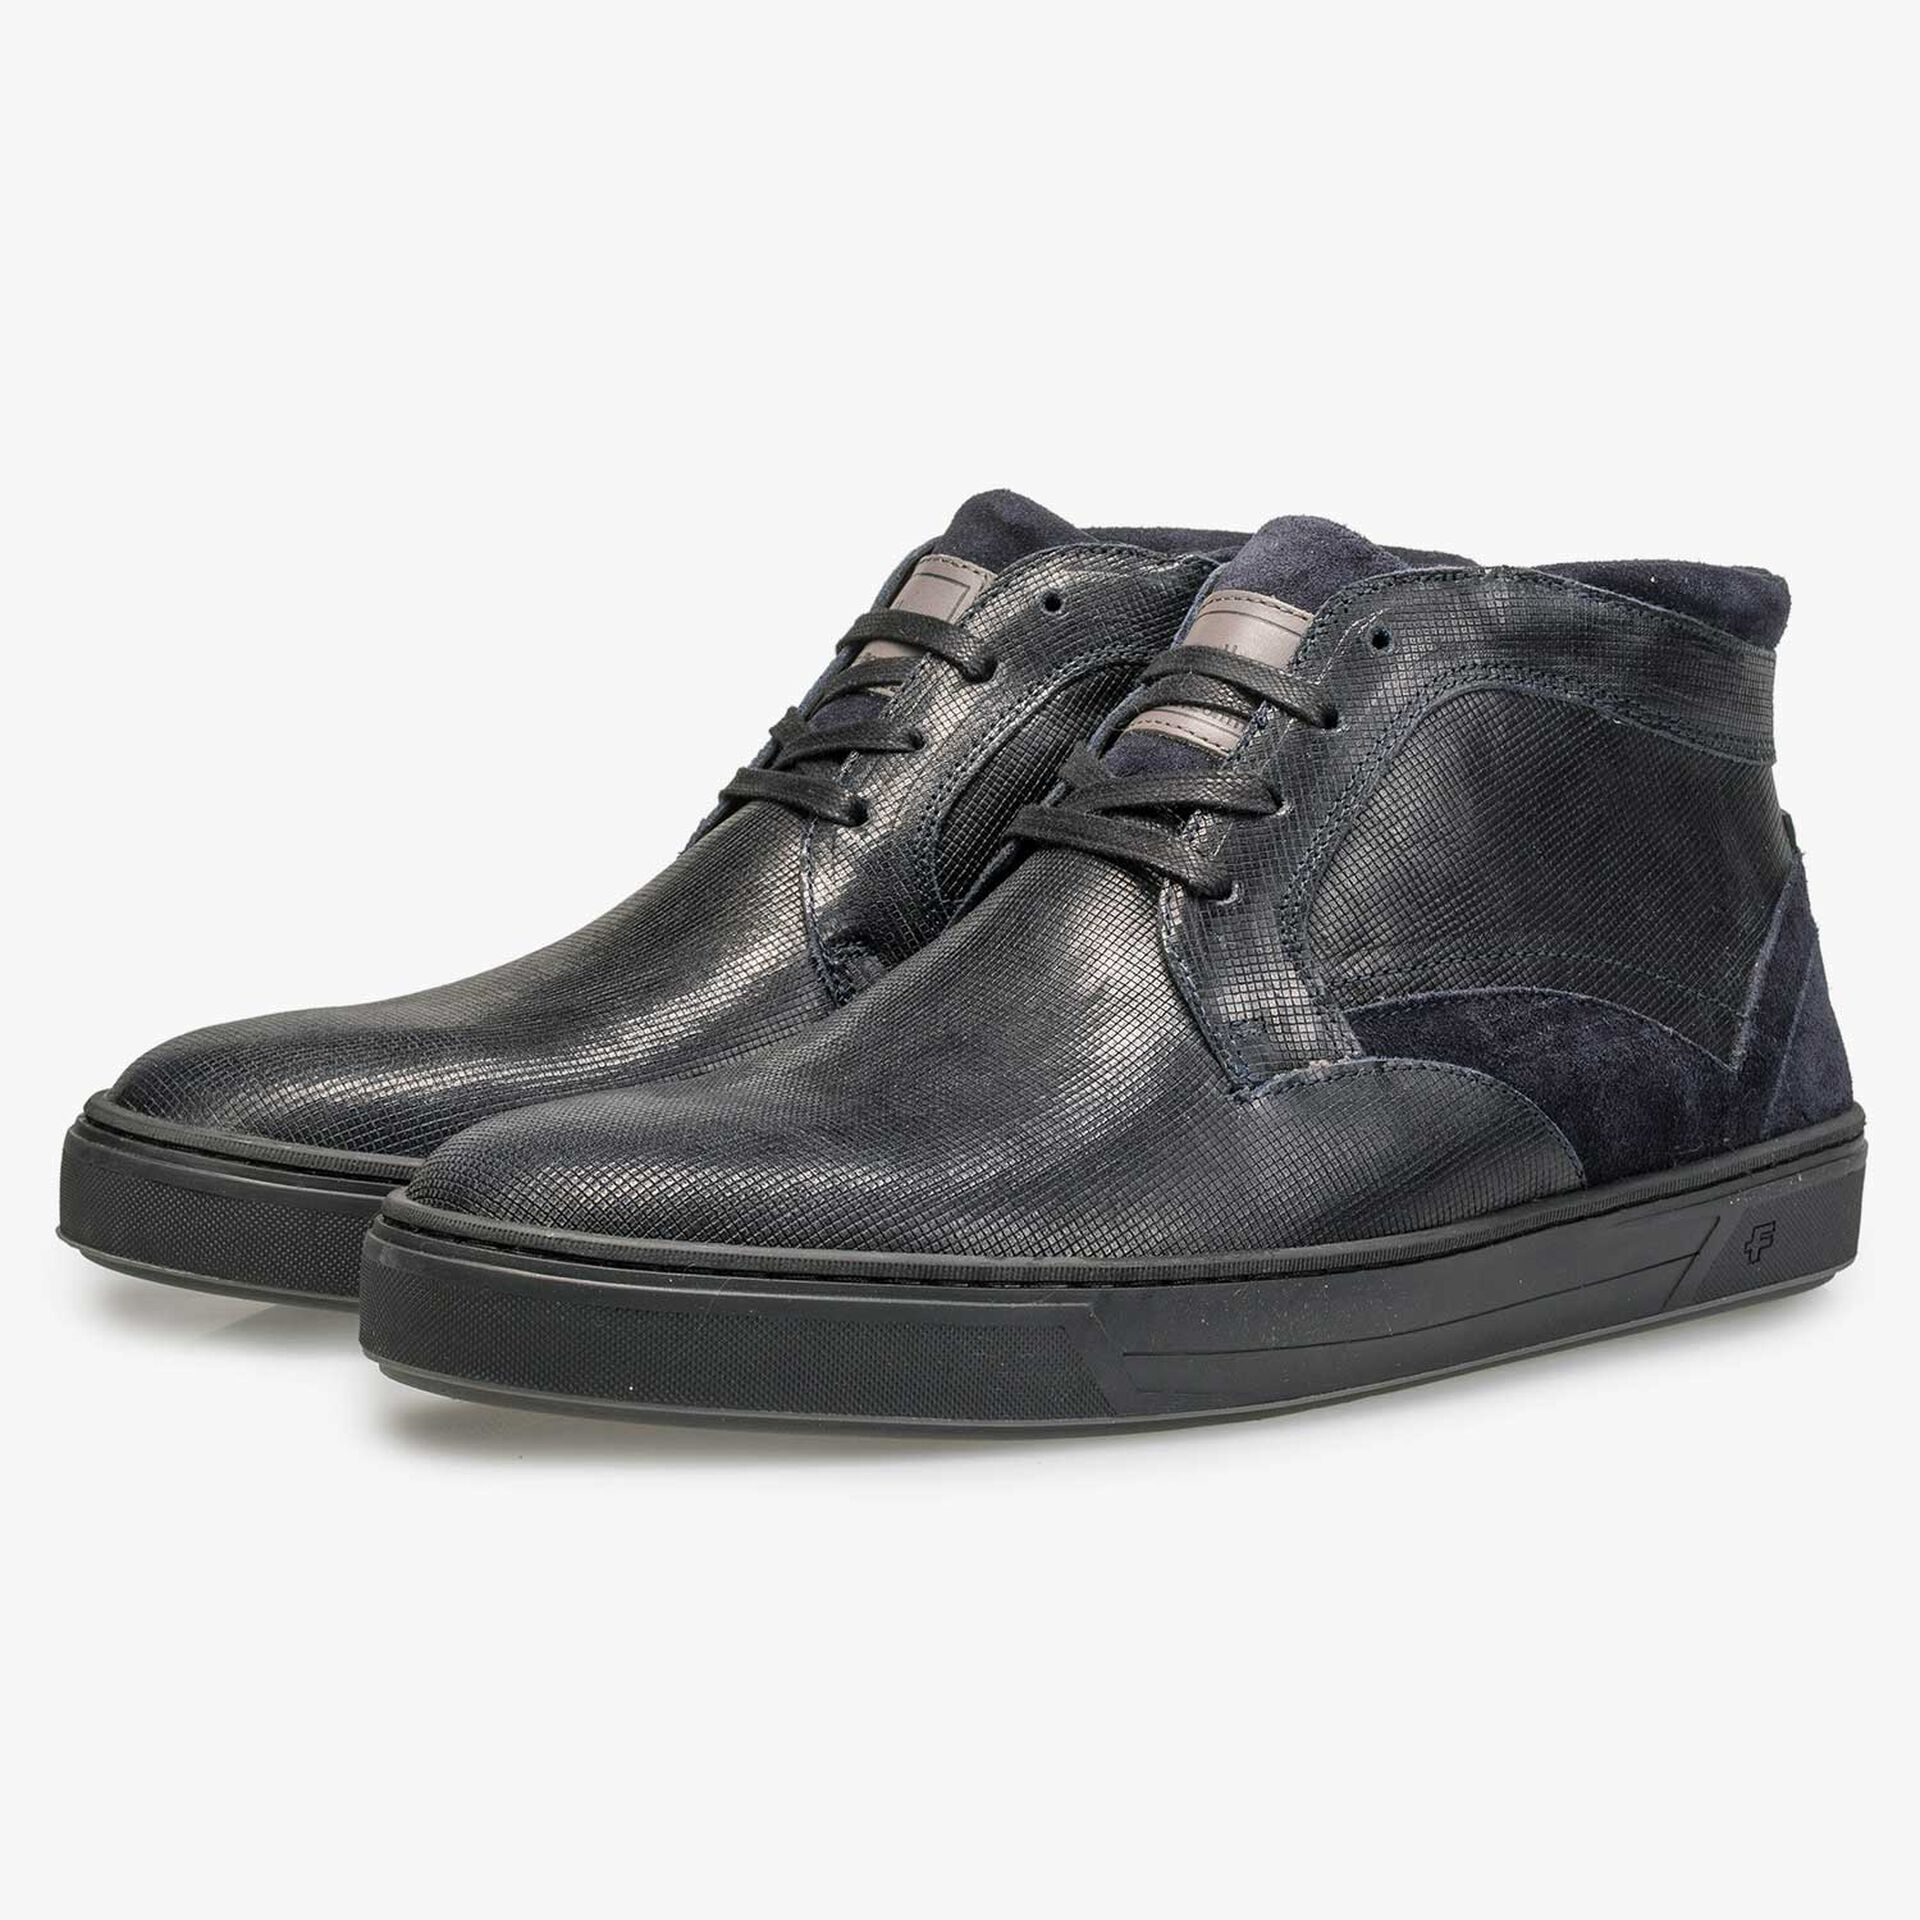 Wool lined, mid-high calf's leather shoe